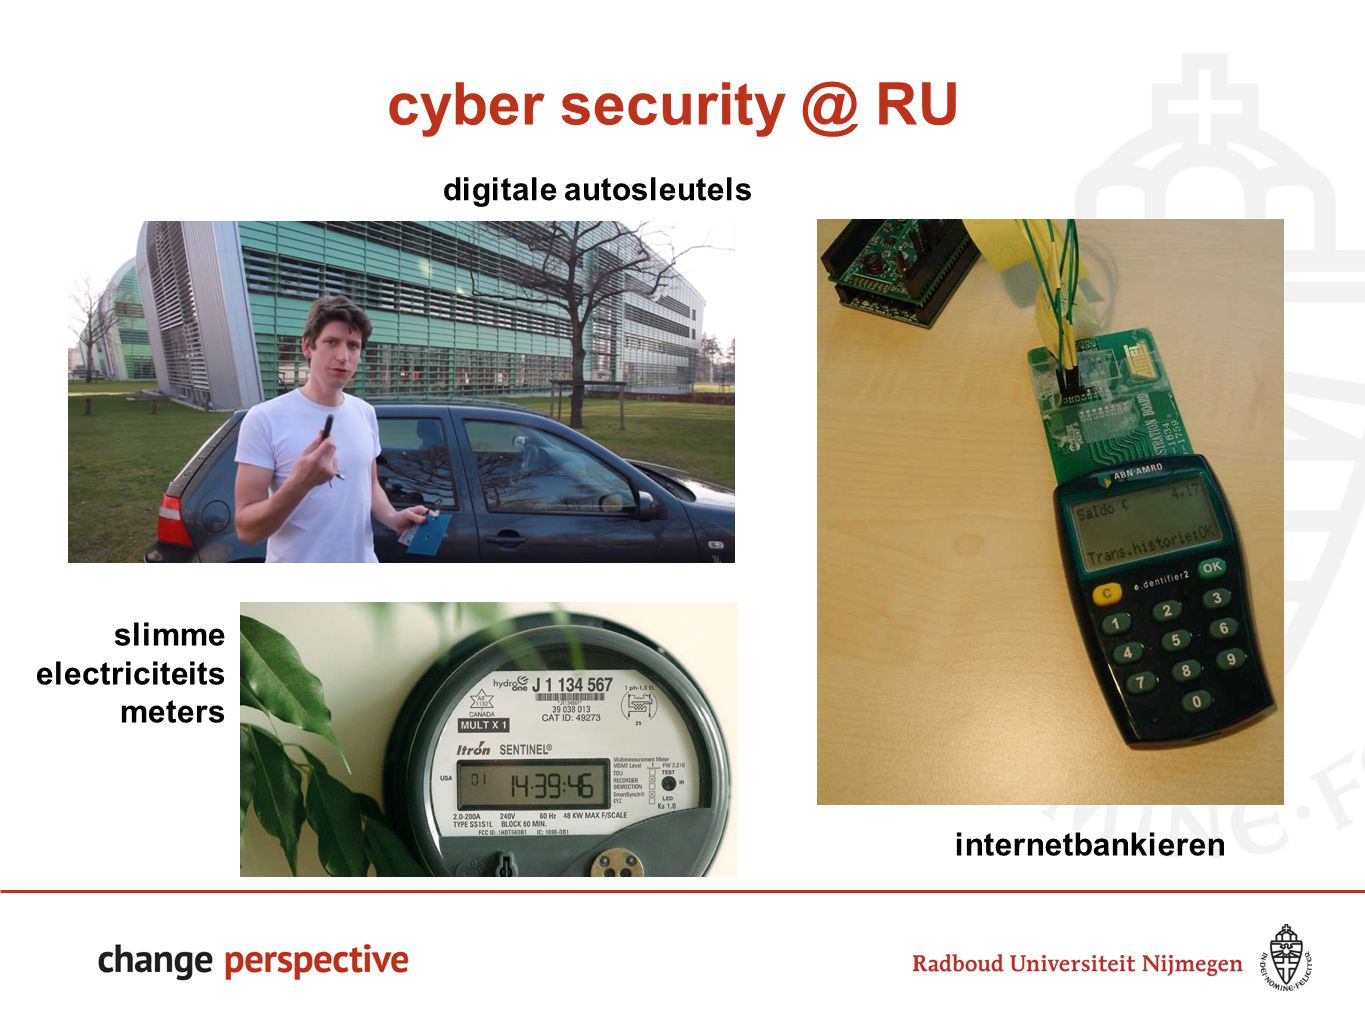 cyber security @ RU 77 digitale autosleutels slimme electriciteits